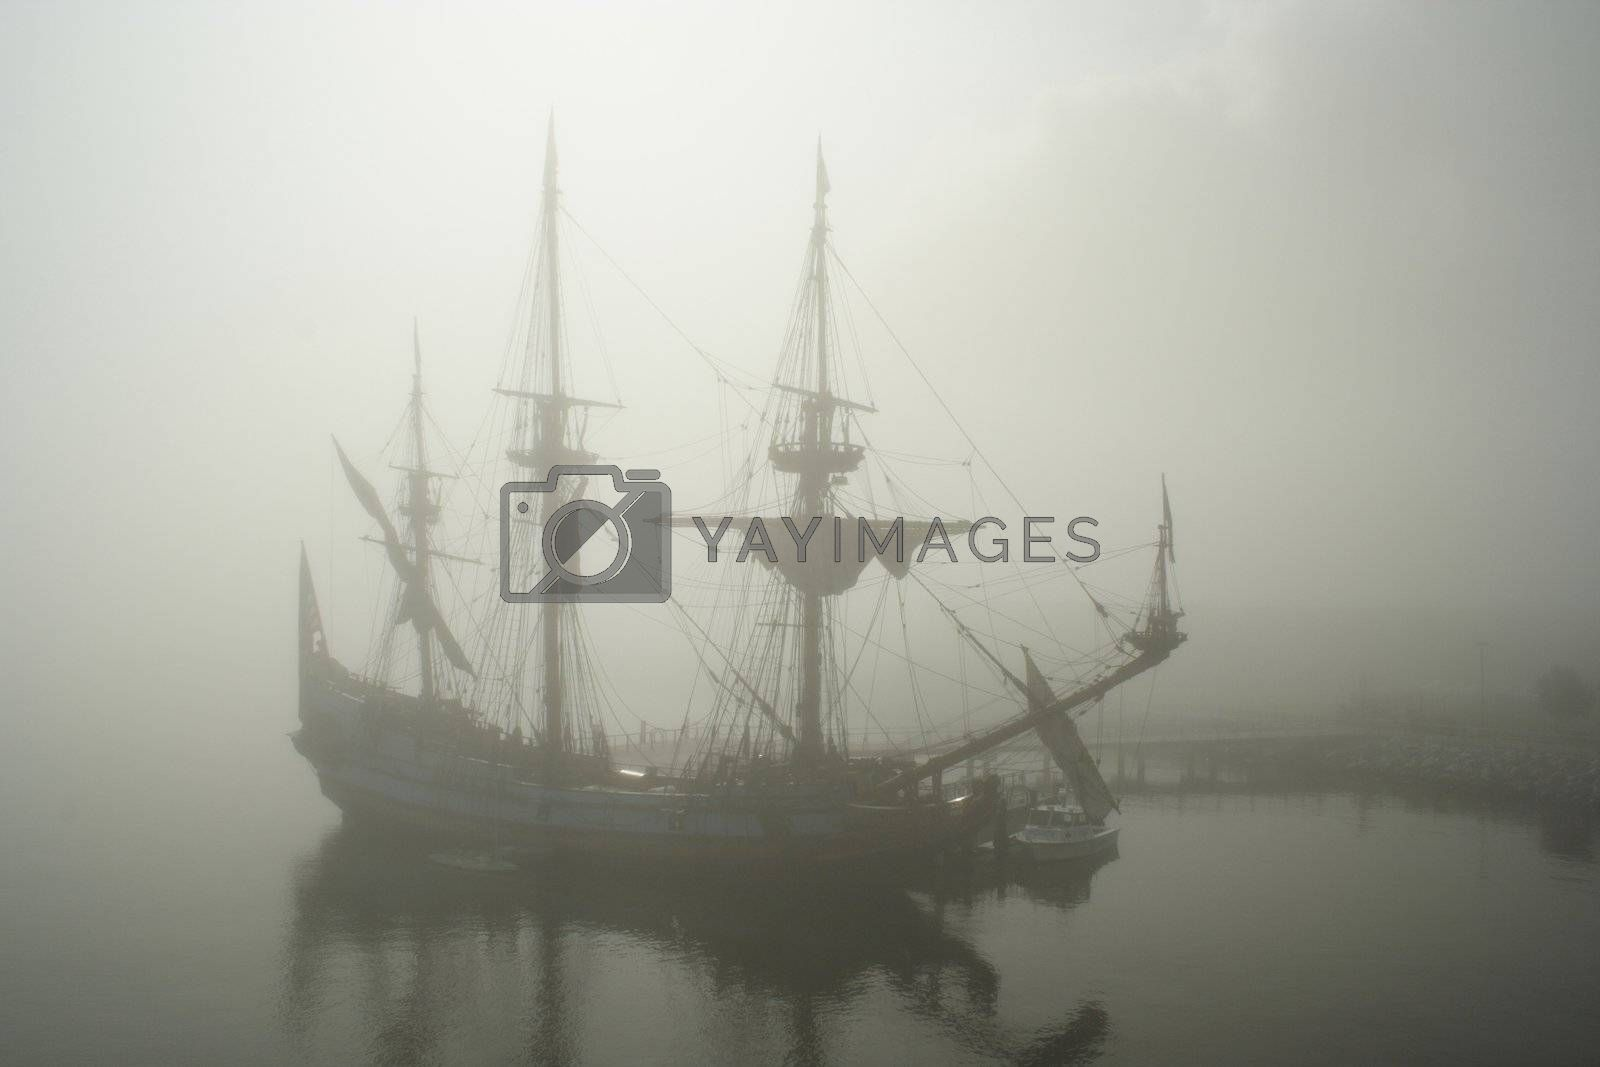 Old sail ship (Pirate?) in the fog by le_cyclope